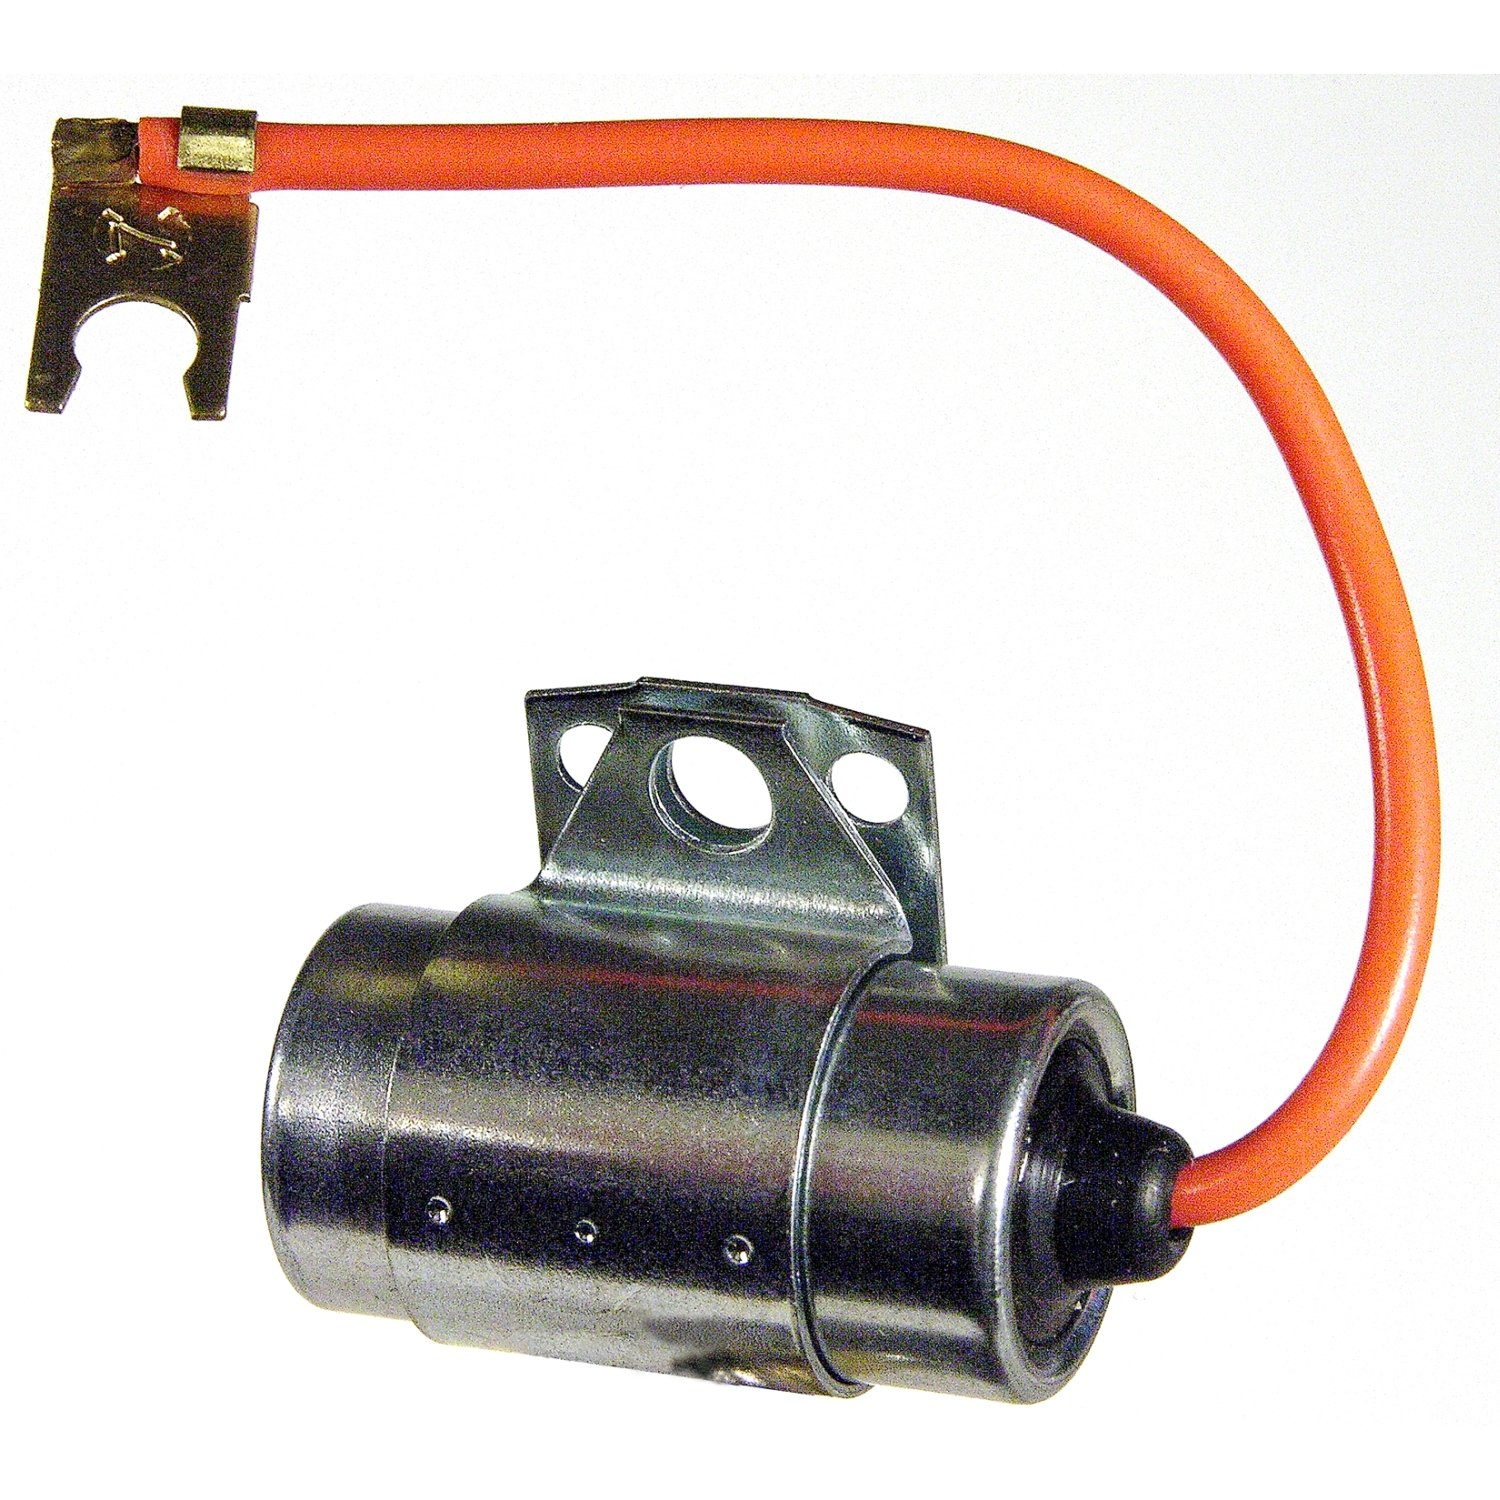 Coil Lead Wires Ignition Parts Automotive 1950 Ford Wiring Acdelco D204 Professional Capacitor